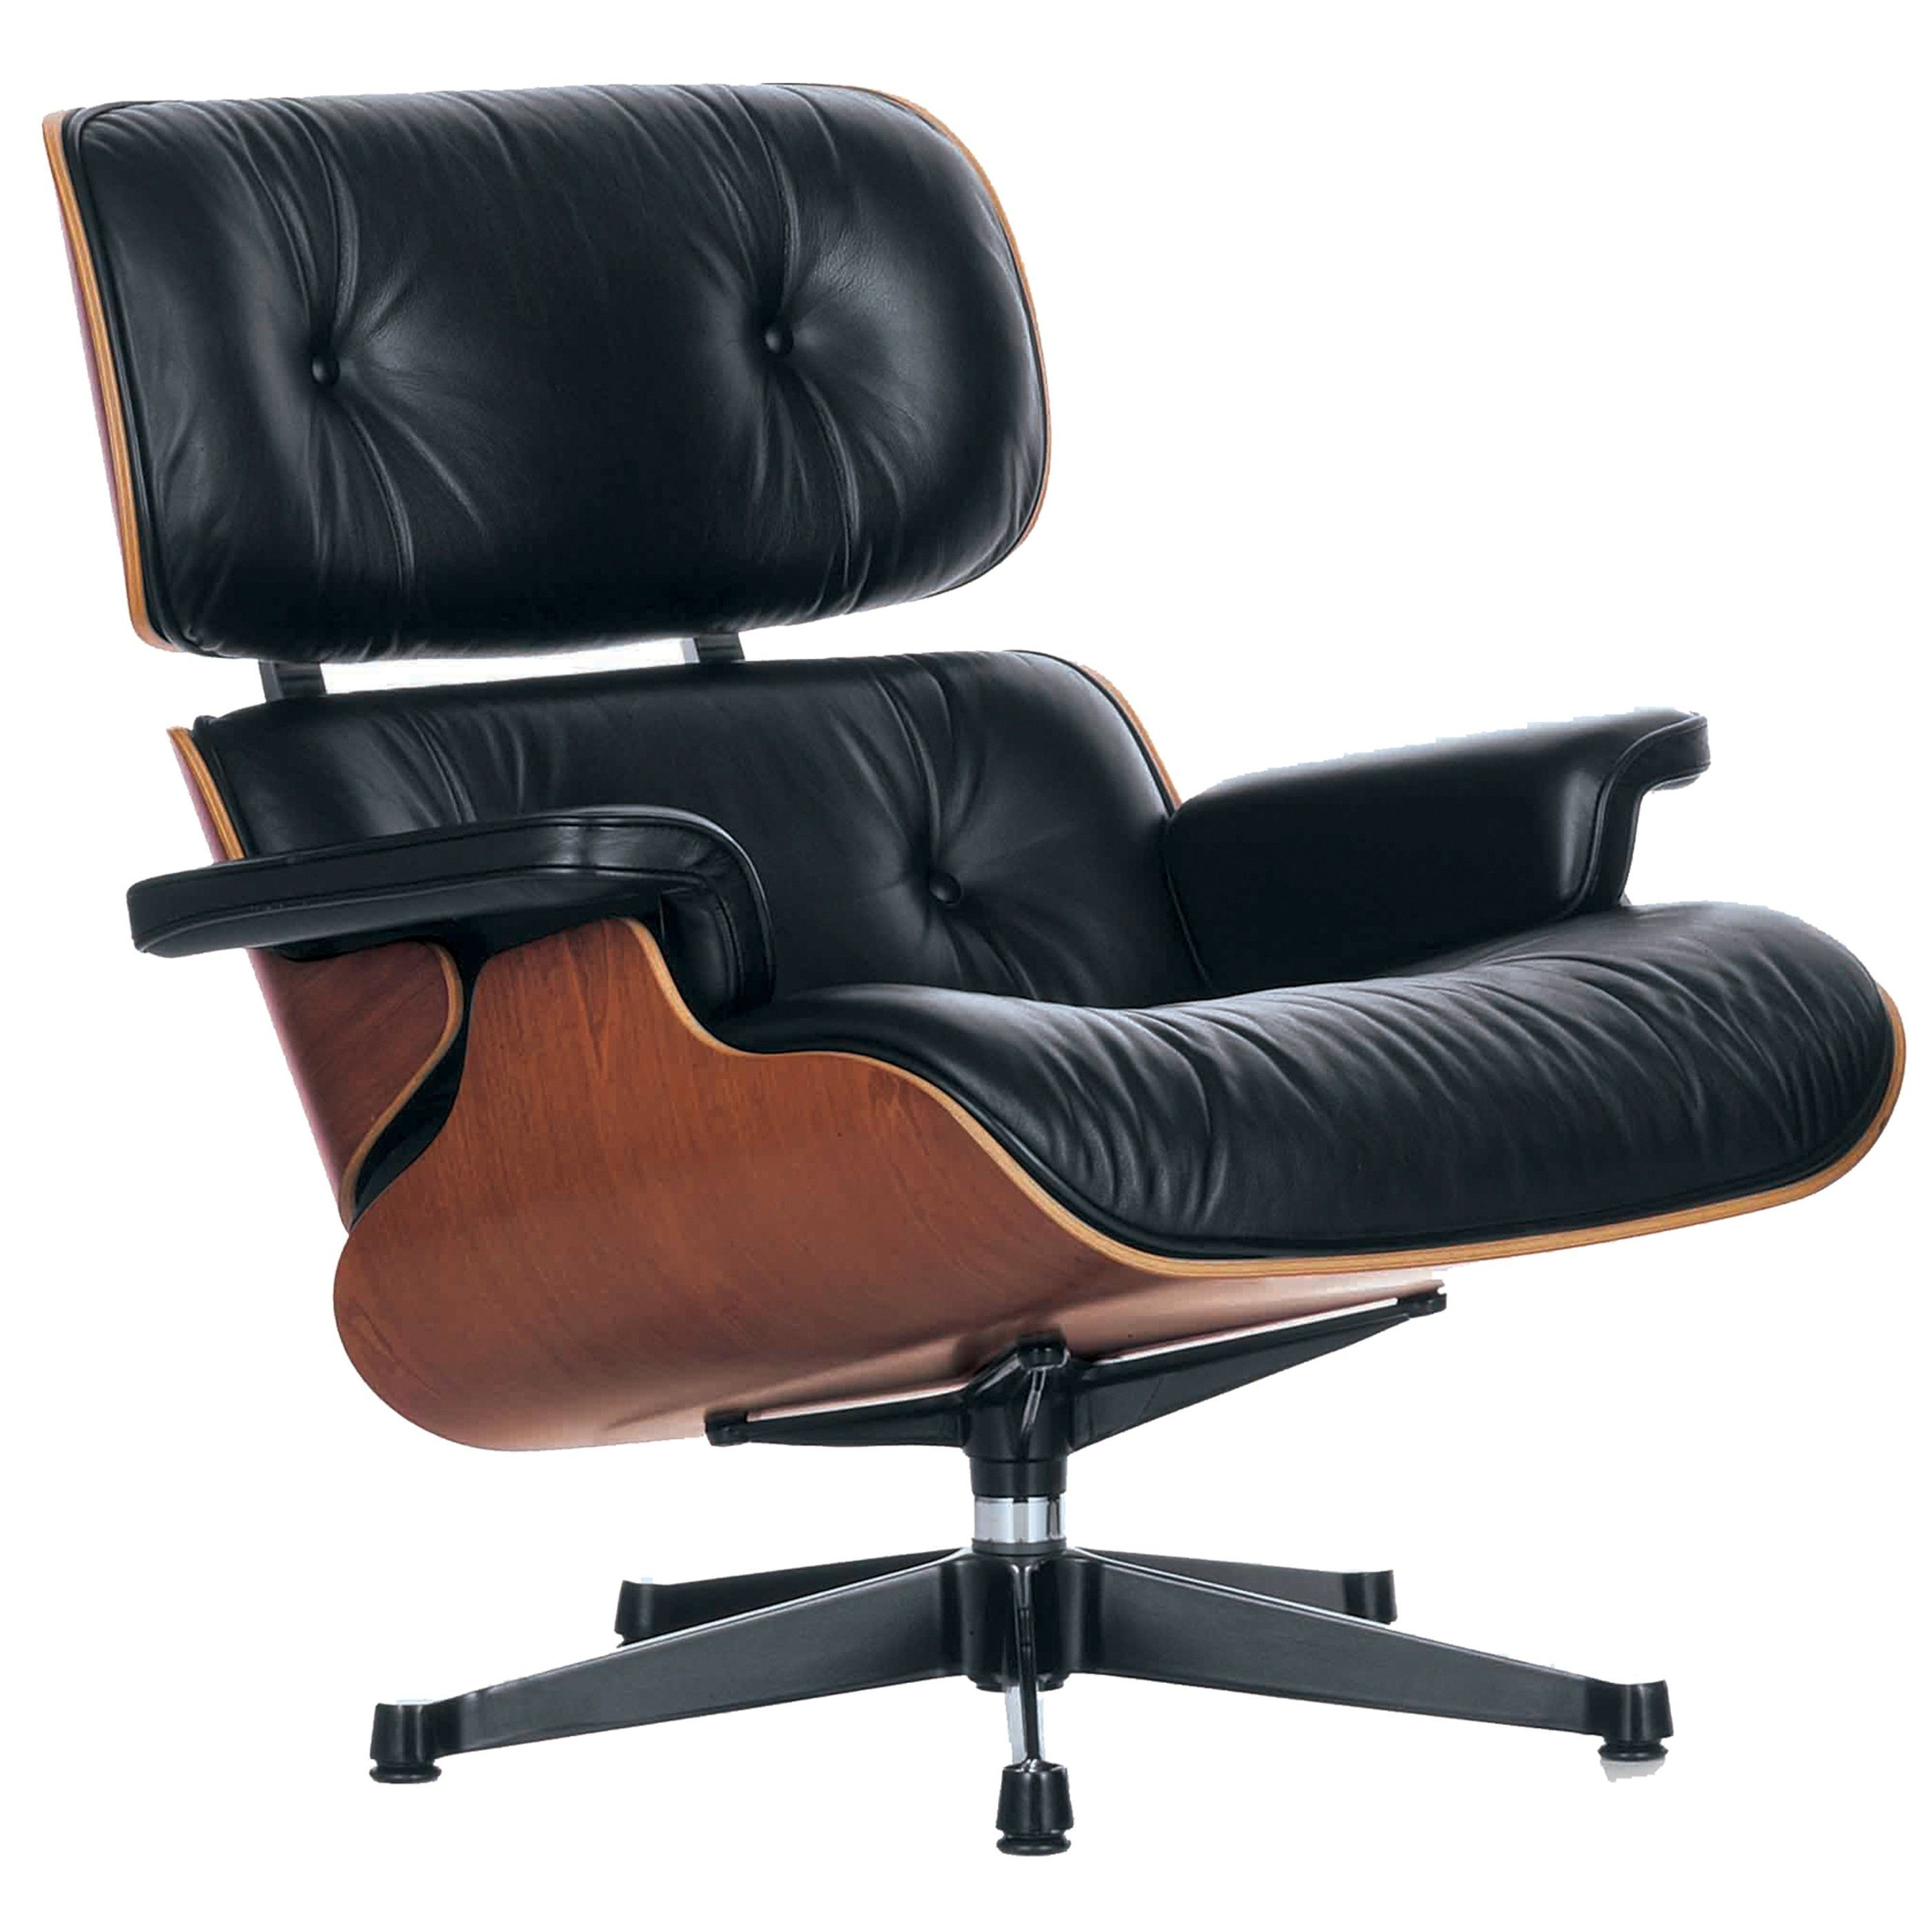 vitra eames lounge chair fauteuil kersenhout flinders verzendt gratis. Black Bedroom Furniture Sets. Home Design Ideas